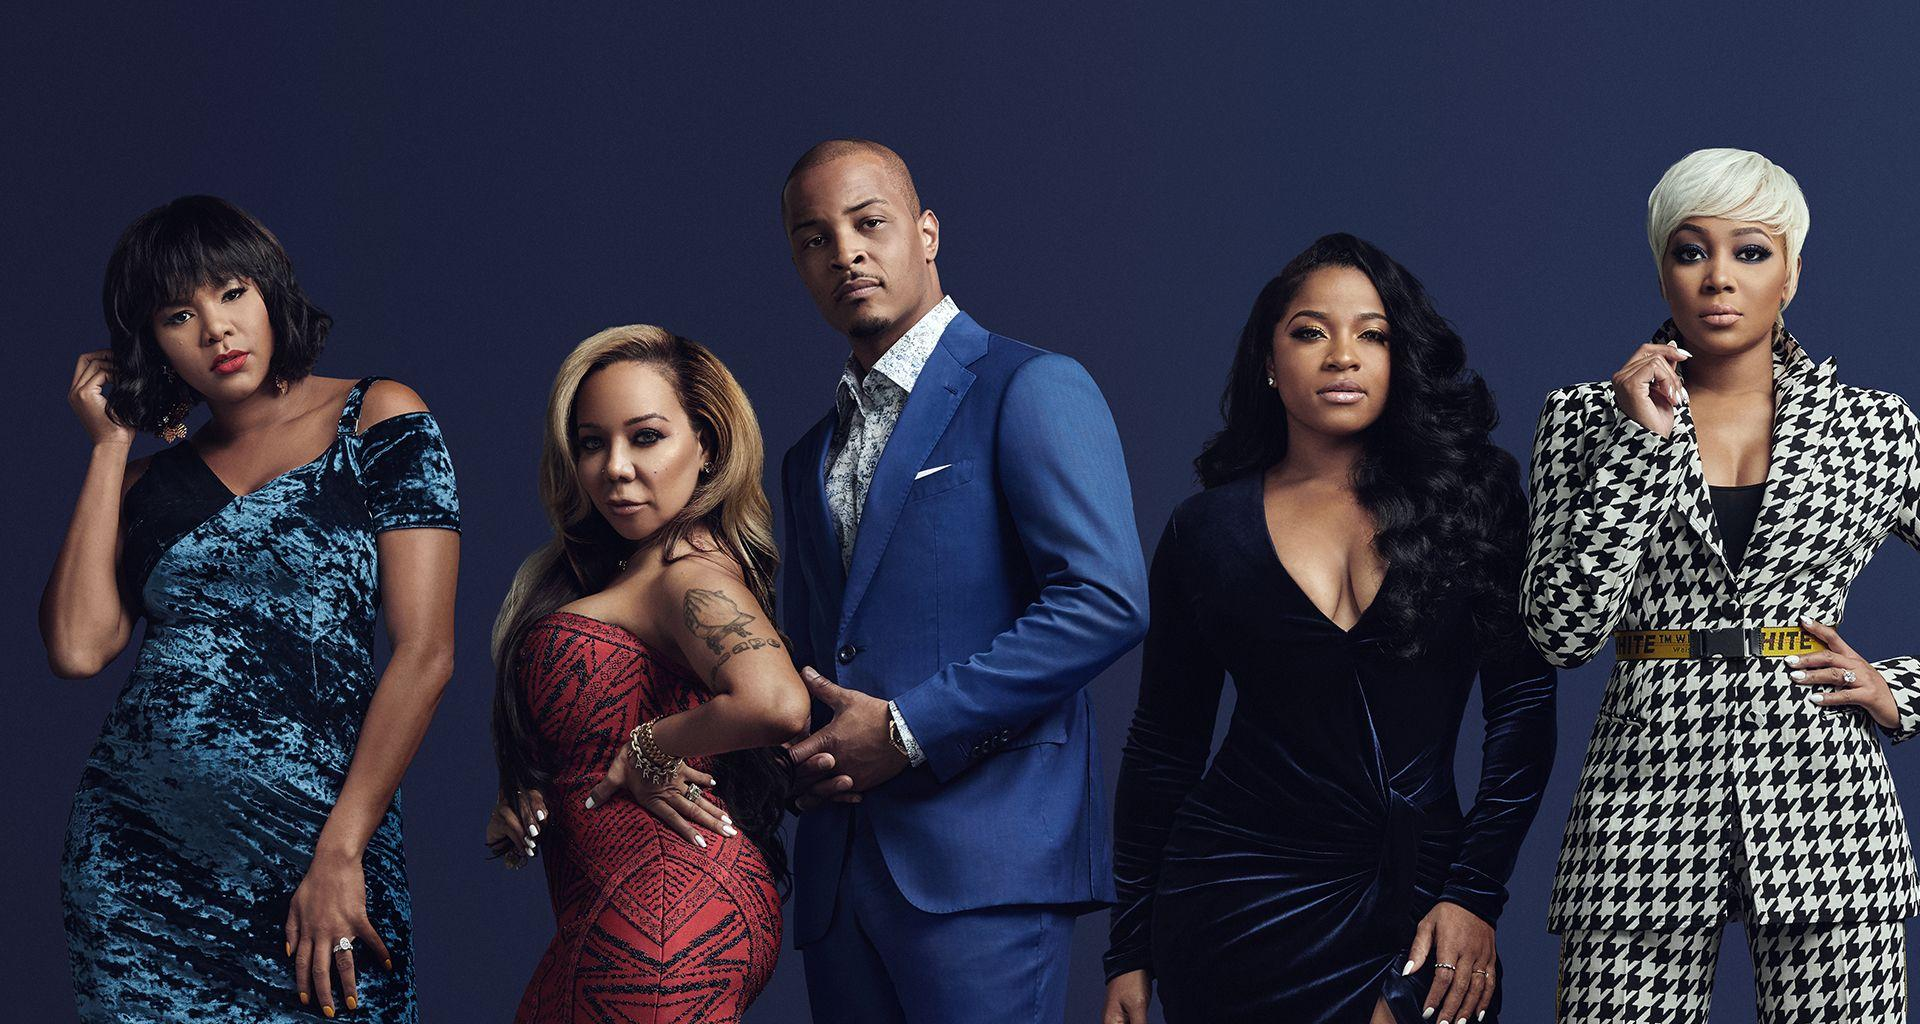 T.I. Reportedly Resumes Shooting For The 'T.I. & Tiny: Friends and Family Hustle' Following The Passing Of His Sister, Precious Harris